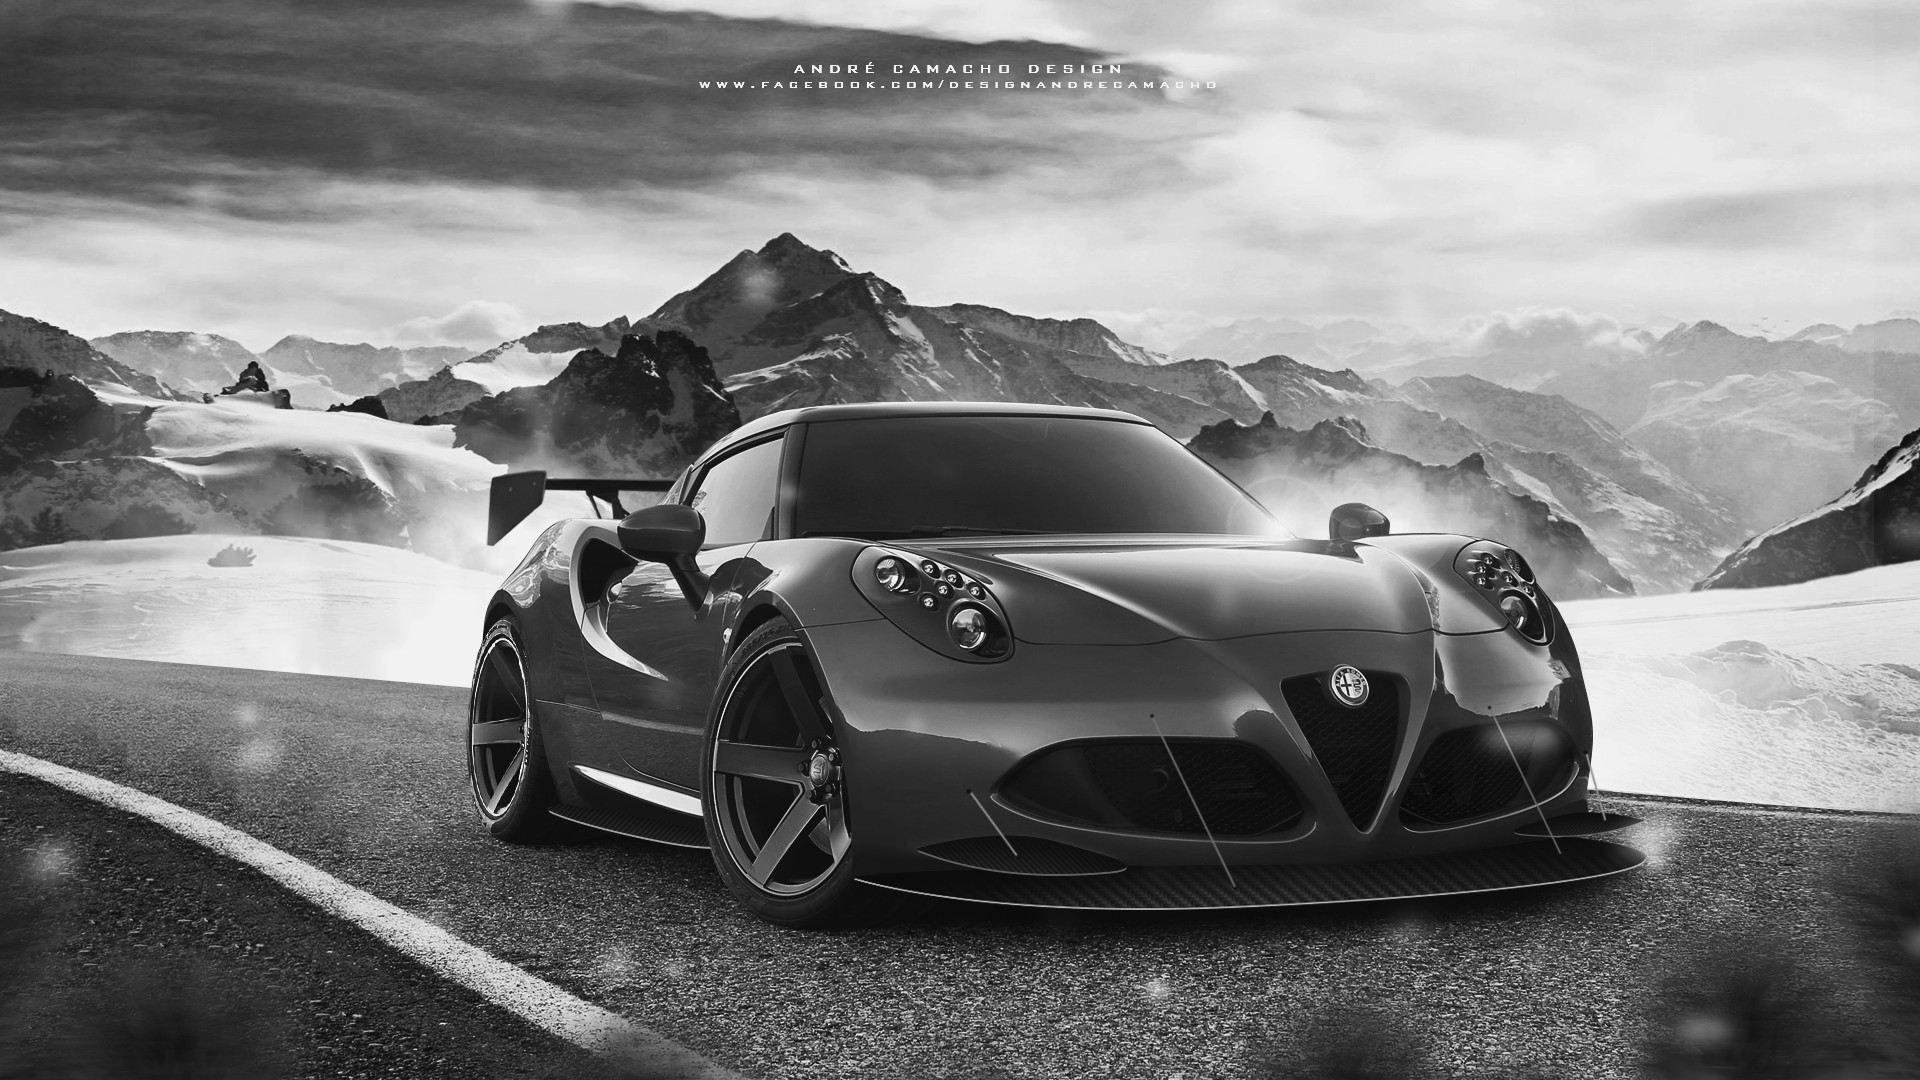 Andre camacho design alfa romeo 4c black and white